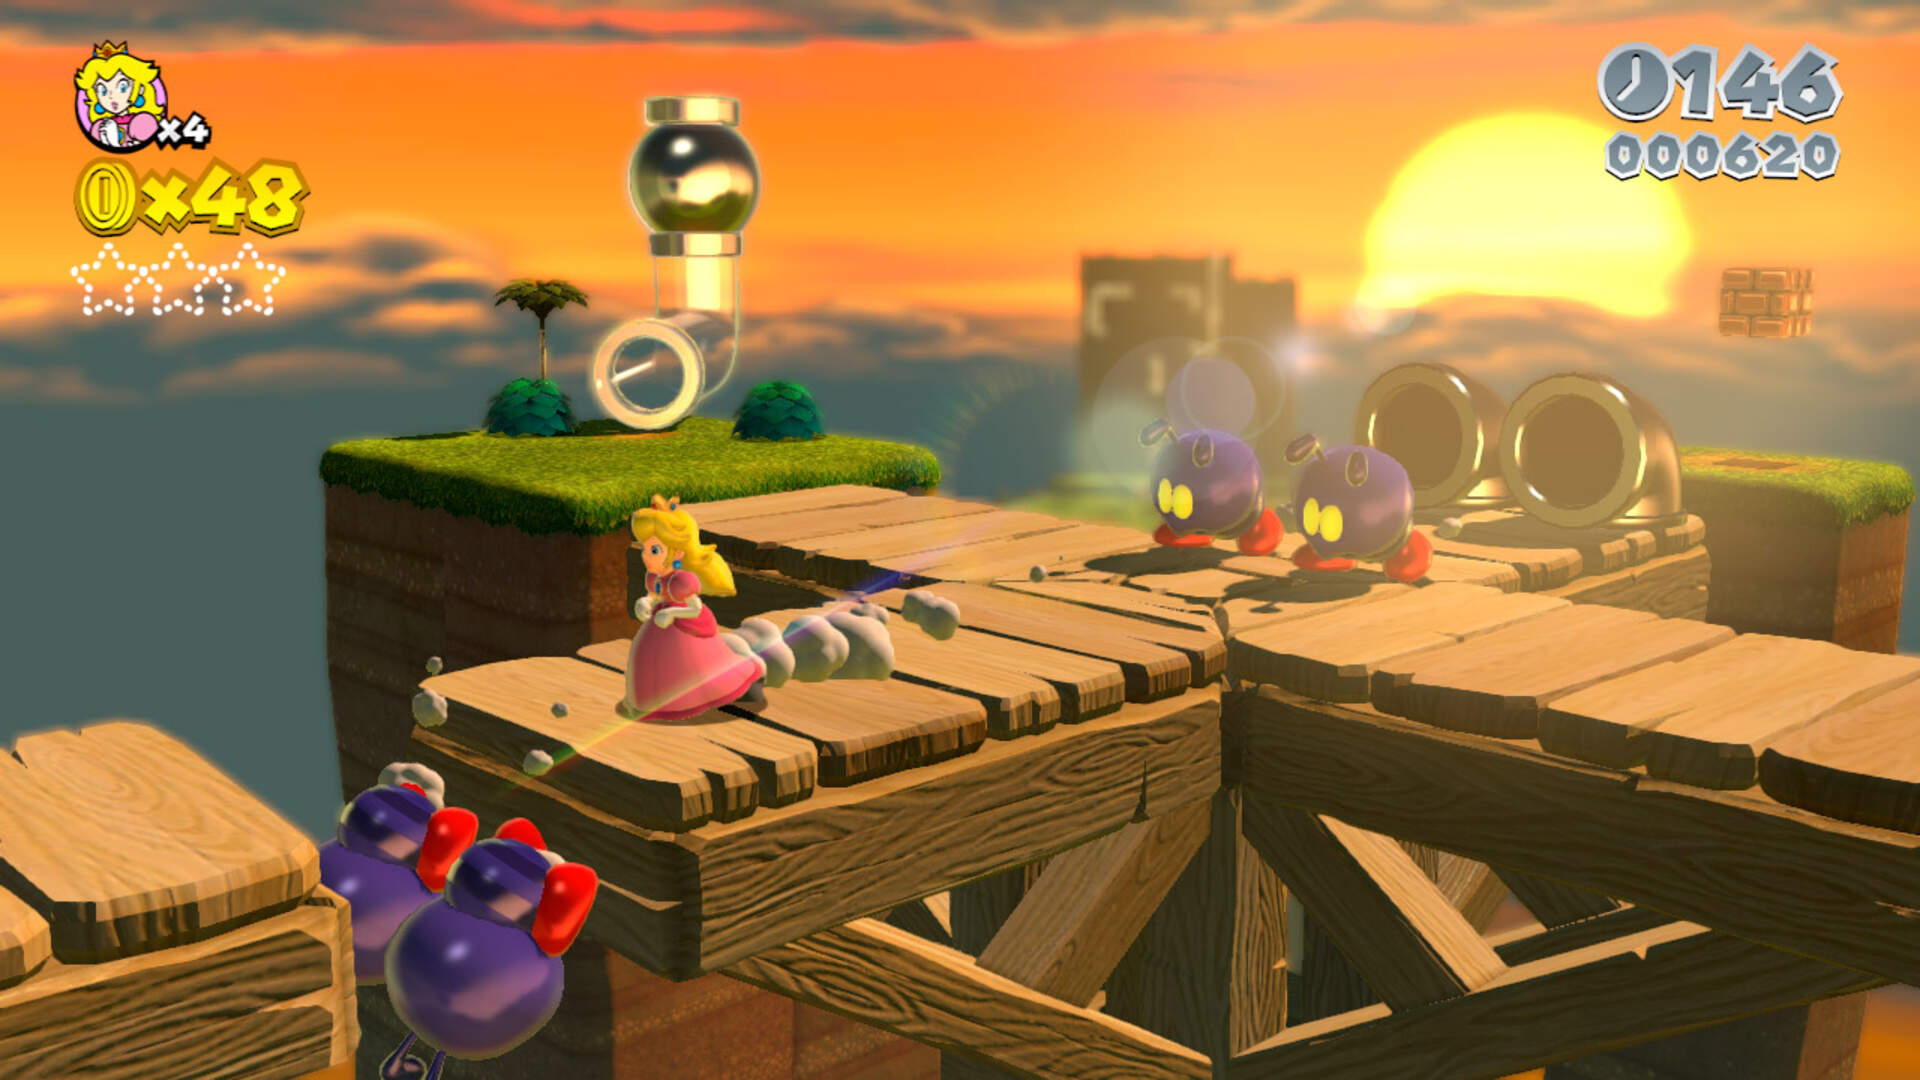 What are the Best Wii U Games?